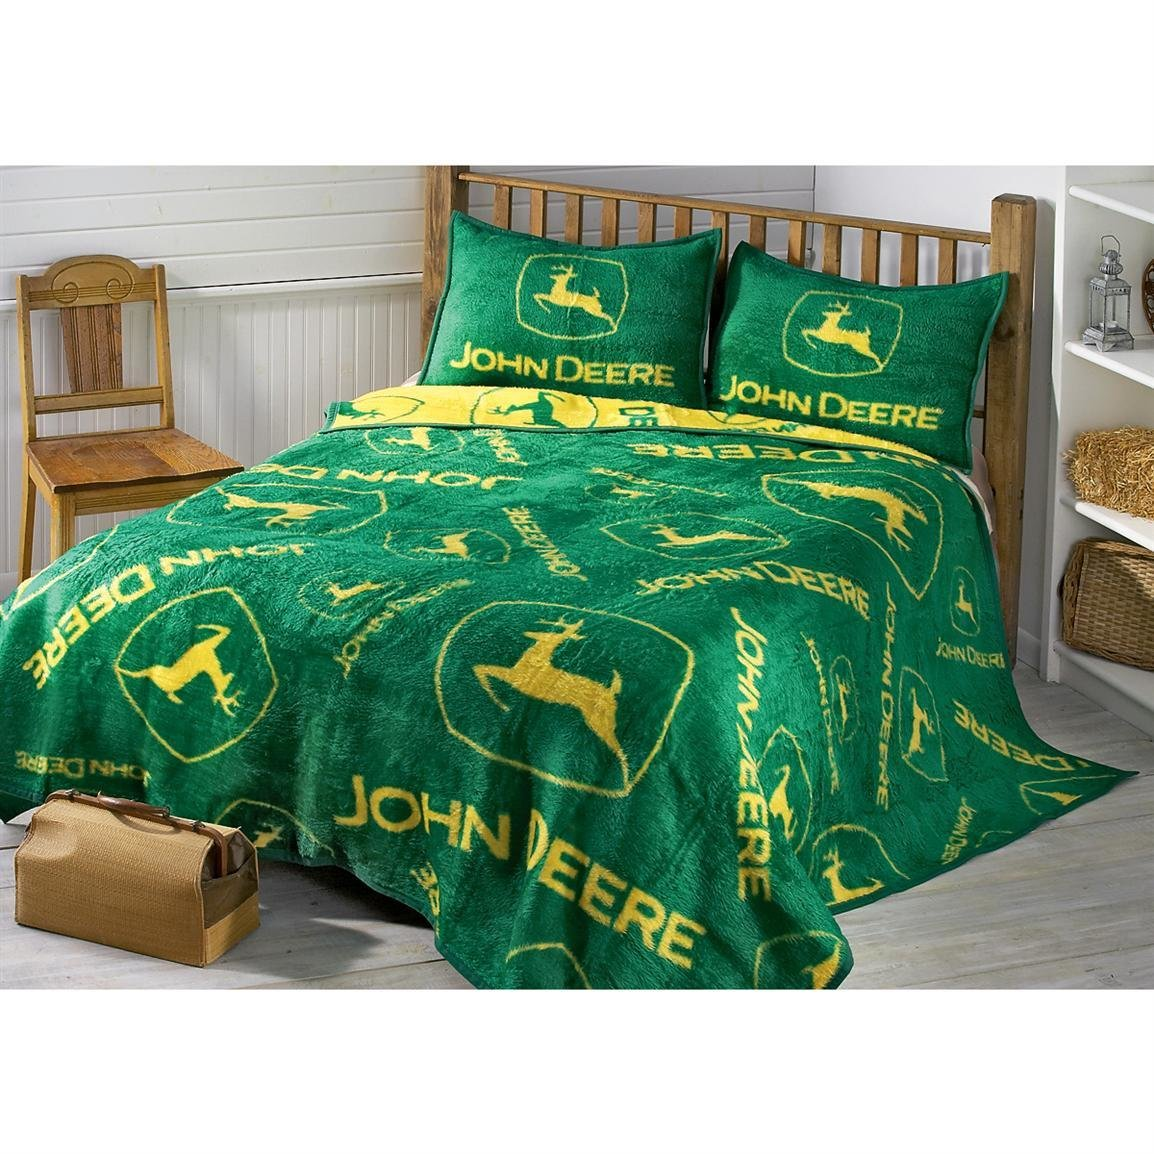 Best John Deere® Logos Sham 77738 Quilts Sets Collections With Pictures